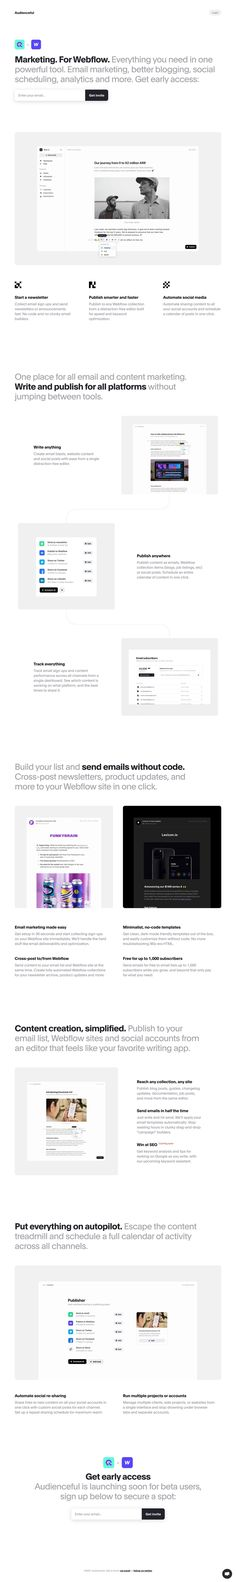 Clean design with crisp screenshots in this launching soon page for upcoming Webflow marketing toolkit Audienceful.